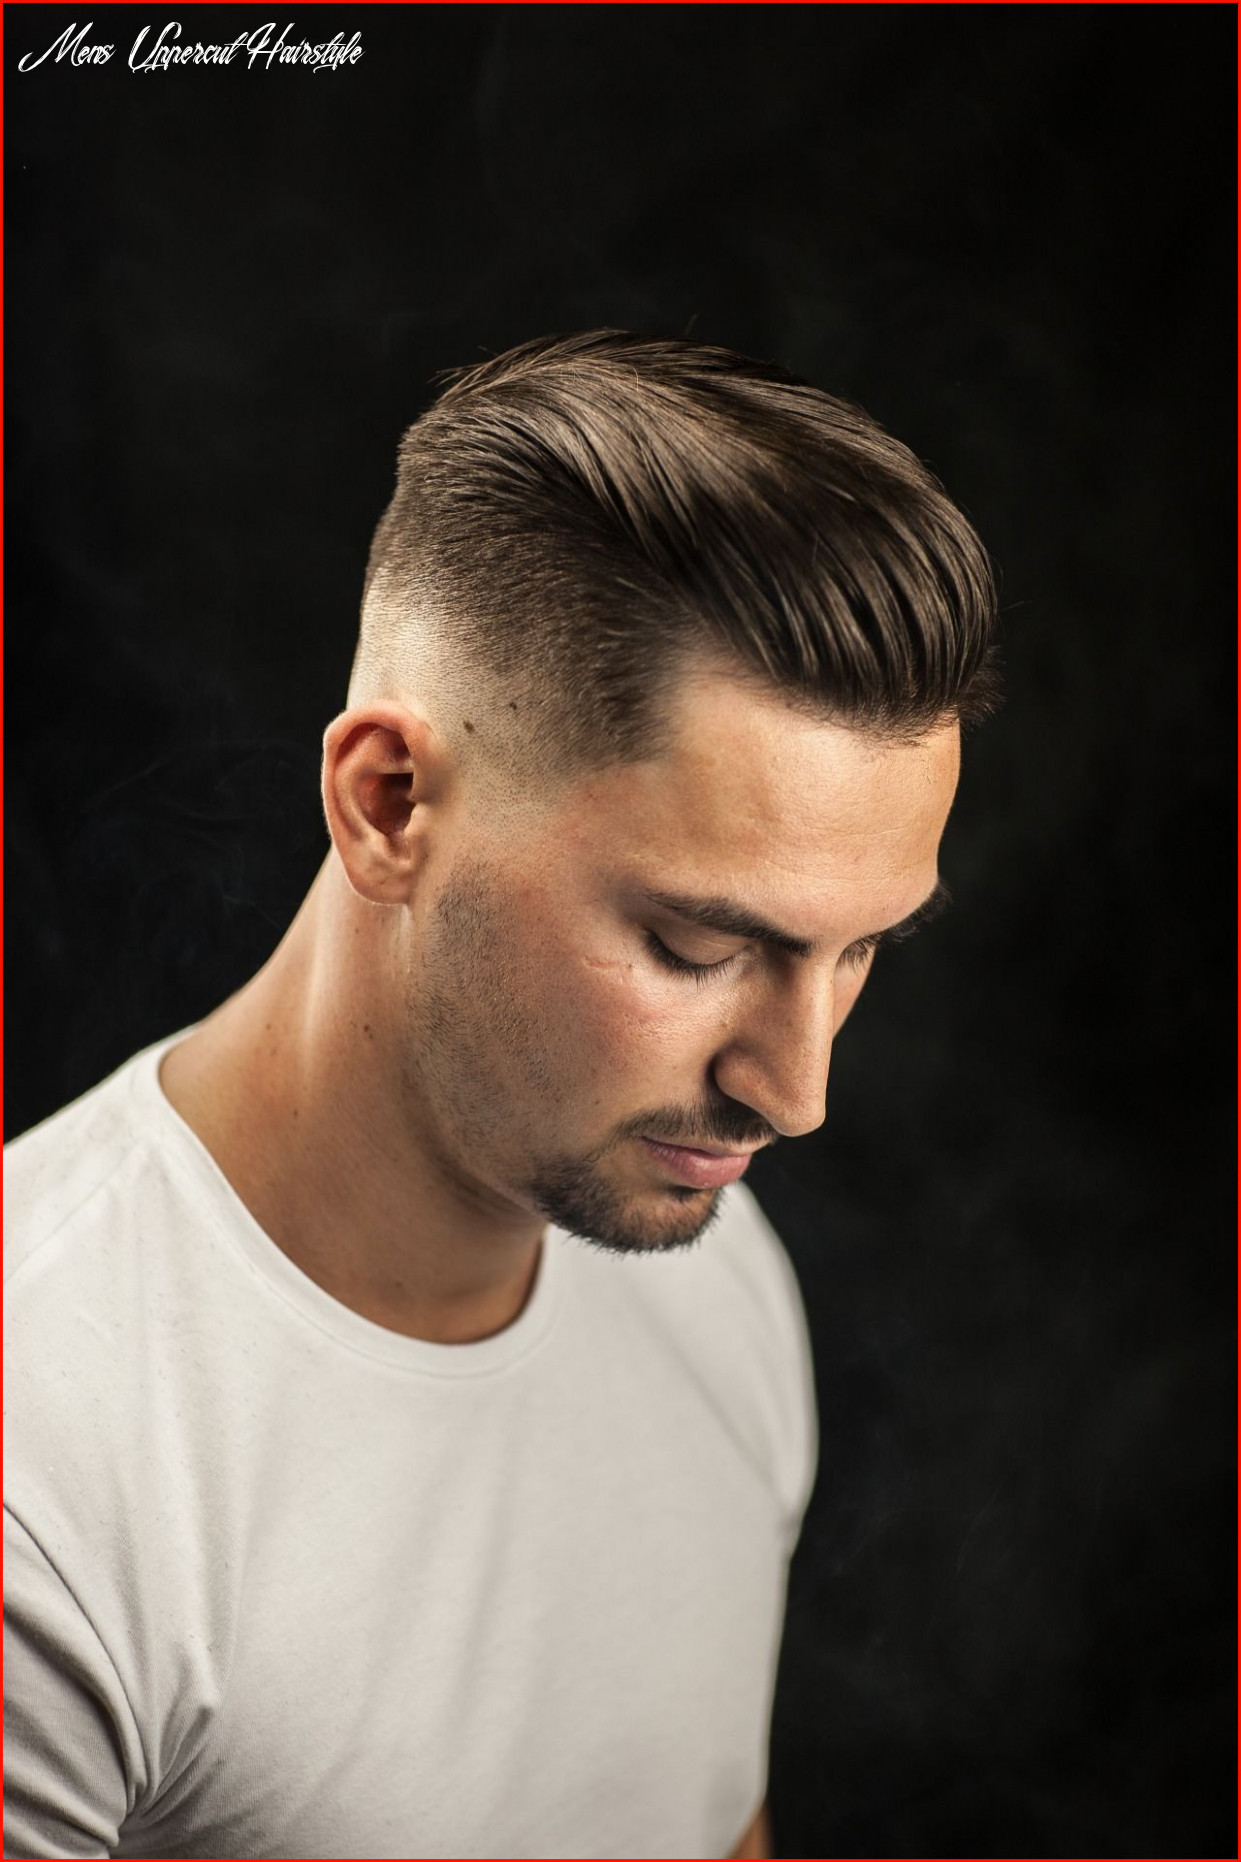 Unique Uppercut Hairstyle Images Of Hairstyles Style 11 11 ...